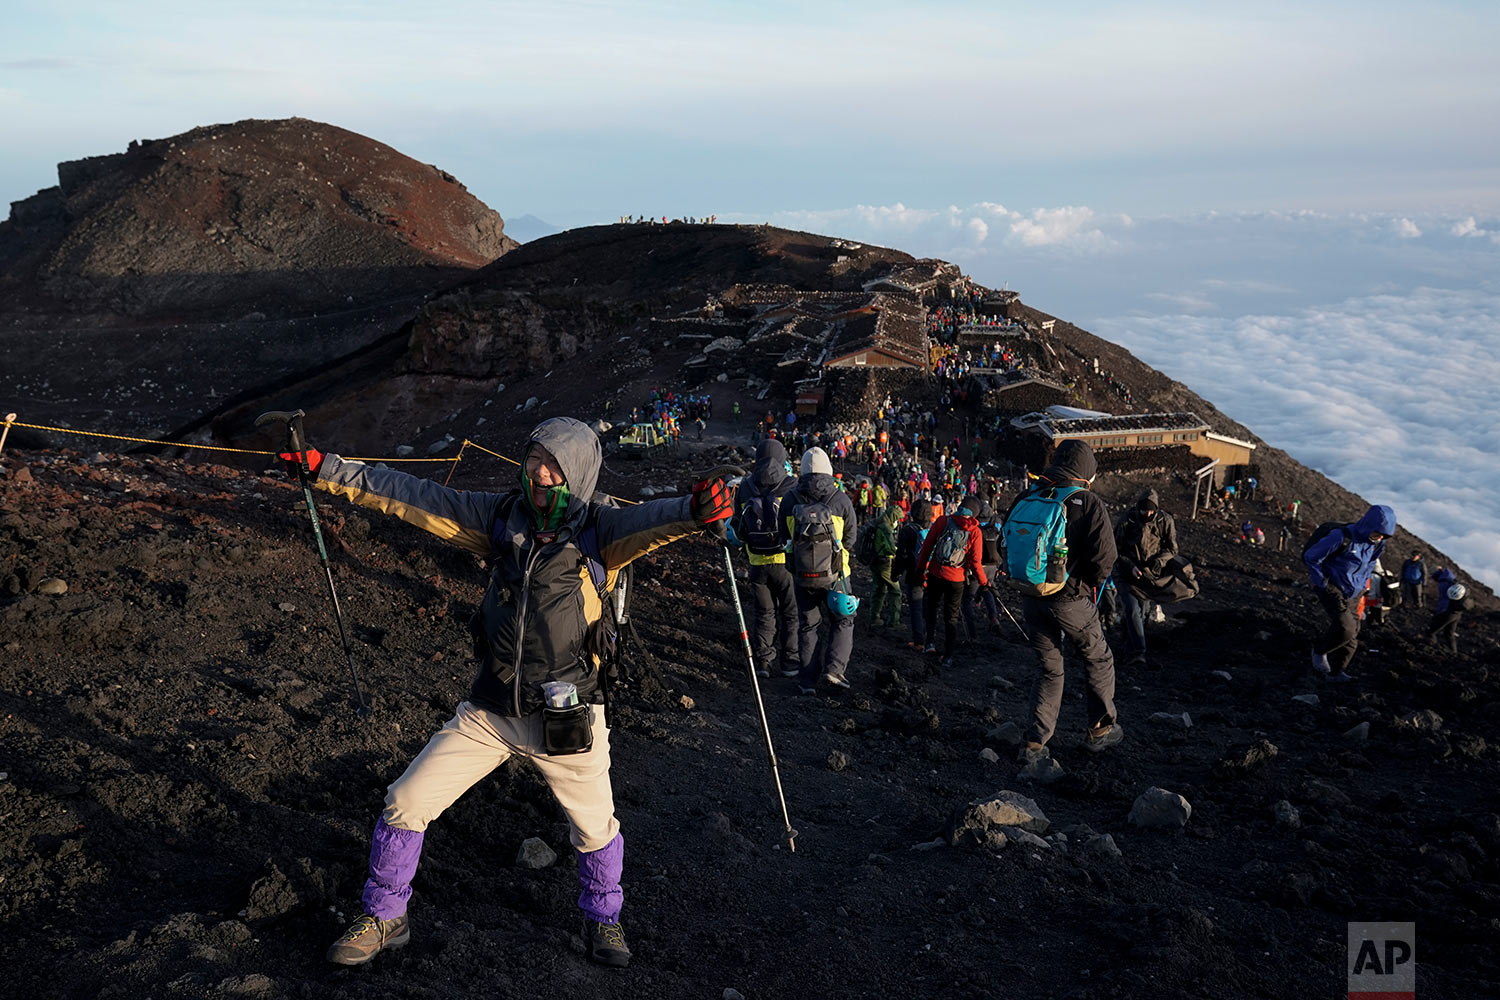 A climber poses for photos after watching the sunrise on the summit of Mount Fuji in Japan, Aug. 27, 2019. (AP Photo/Jae C. Hong)